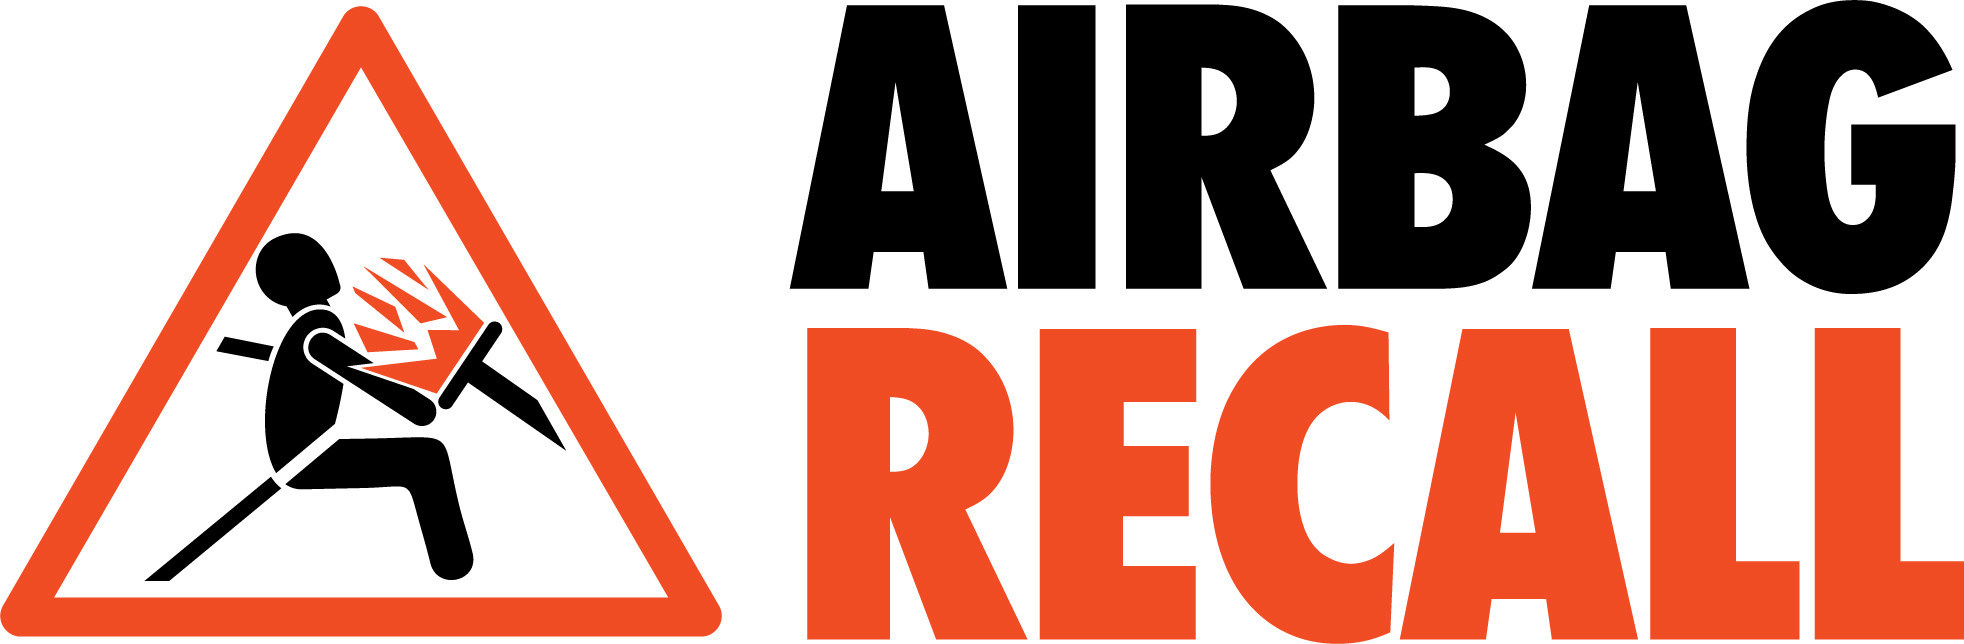 Airbag Recall is an effort supported by community organizations, public interest groups, private companies, elected officials, faith communities and other concerned parties to raise consumer awareness about the ongoing airbag inflator recall.